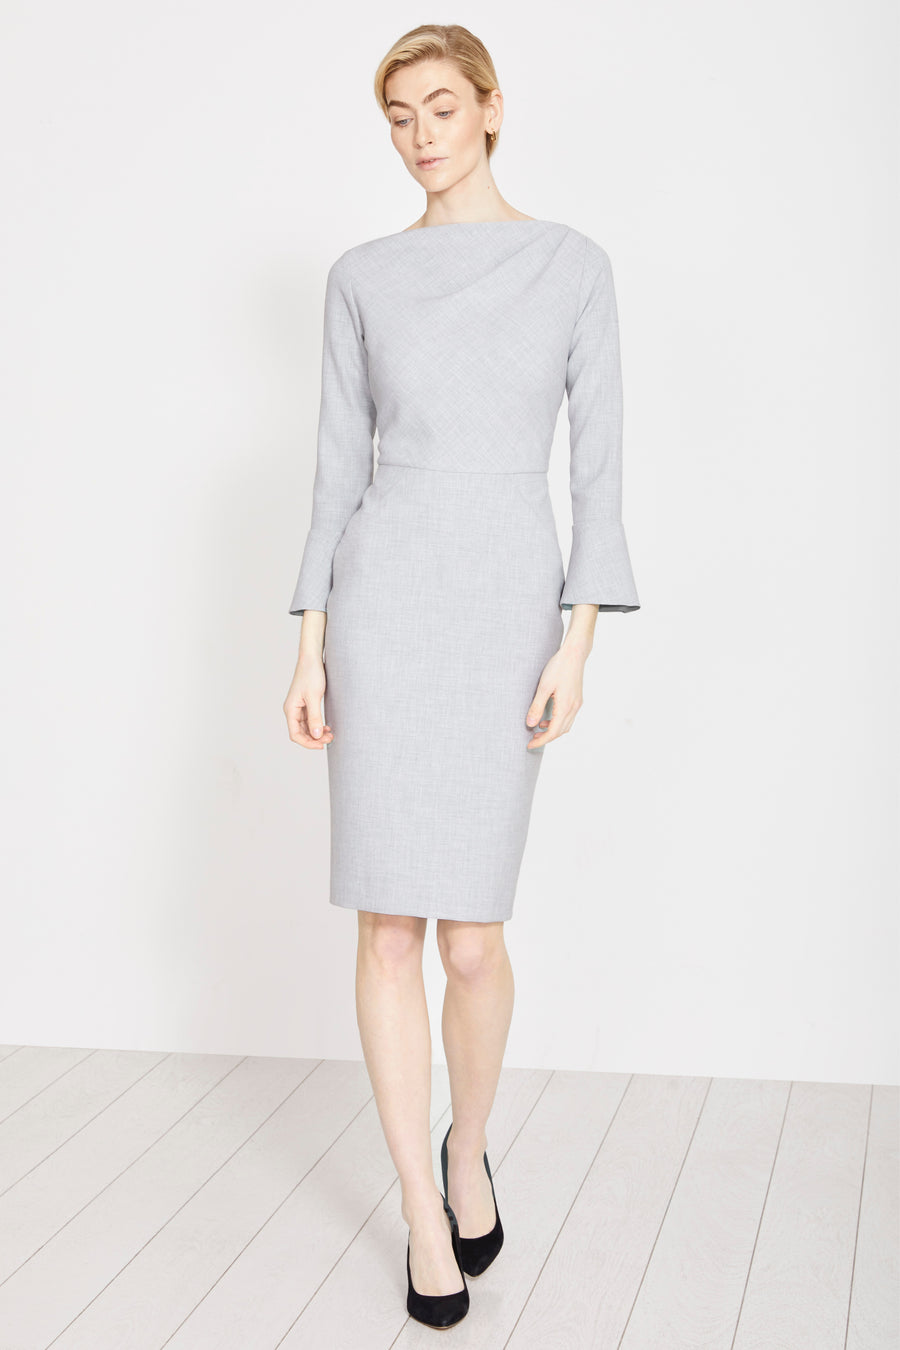 Serpentine Pale Grey Dress